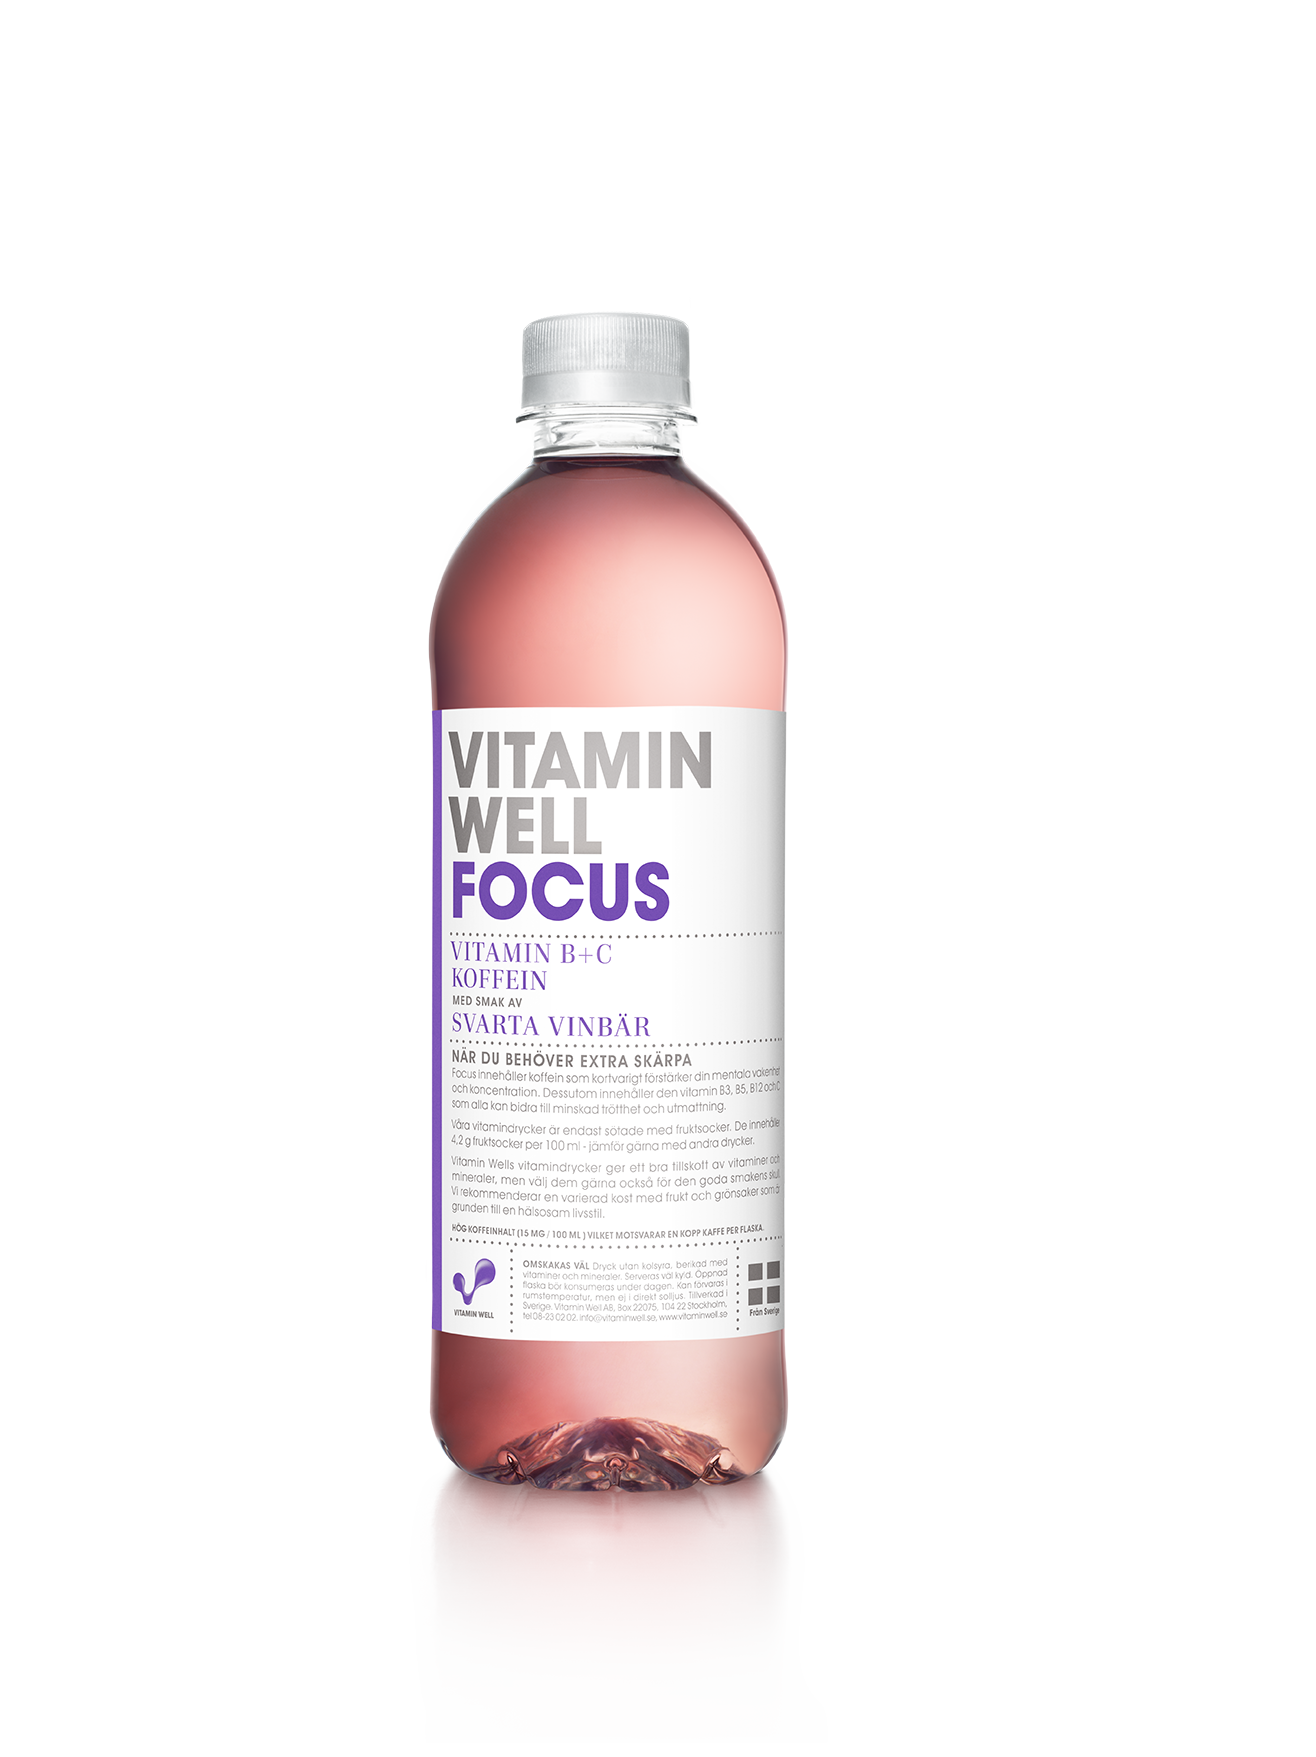 Vitamin Well Focus - 50 cl per flaska